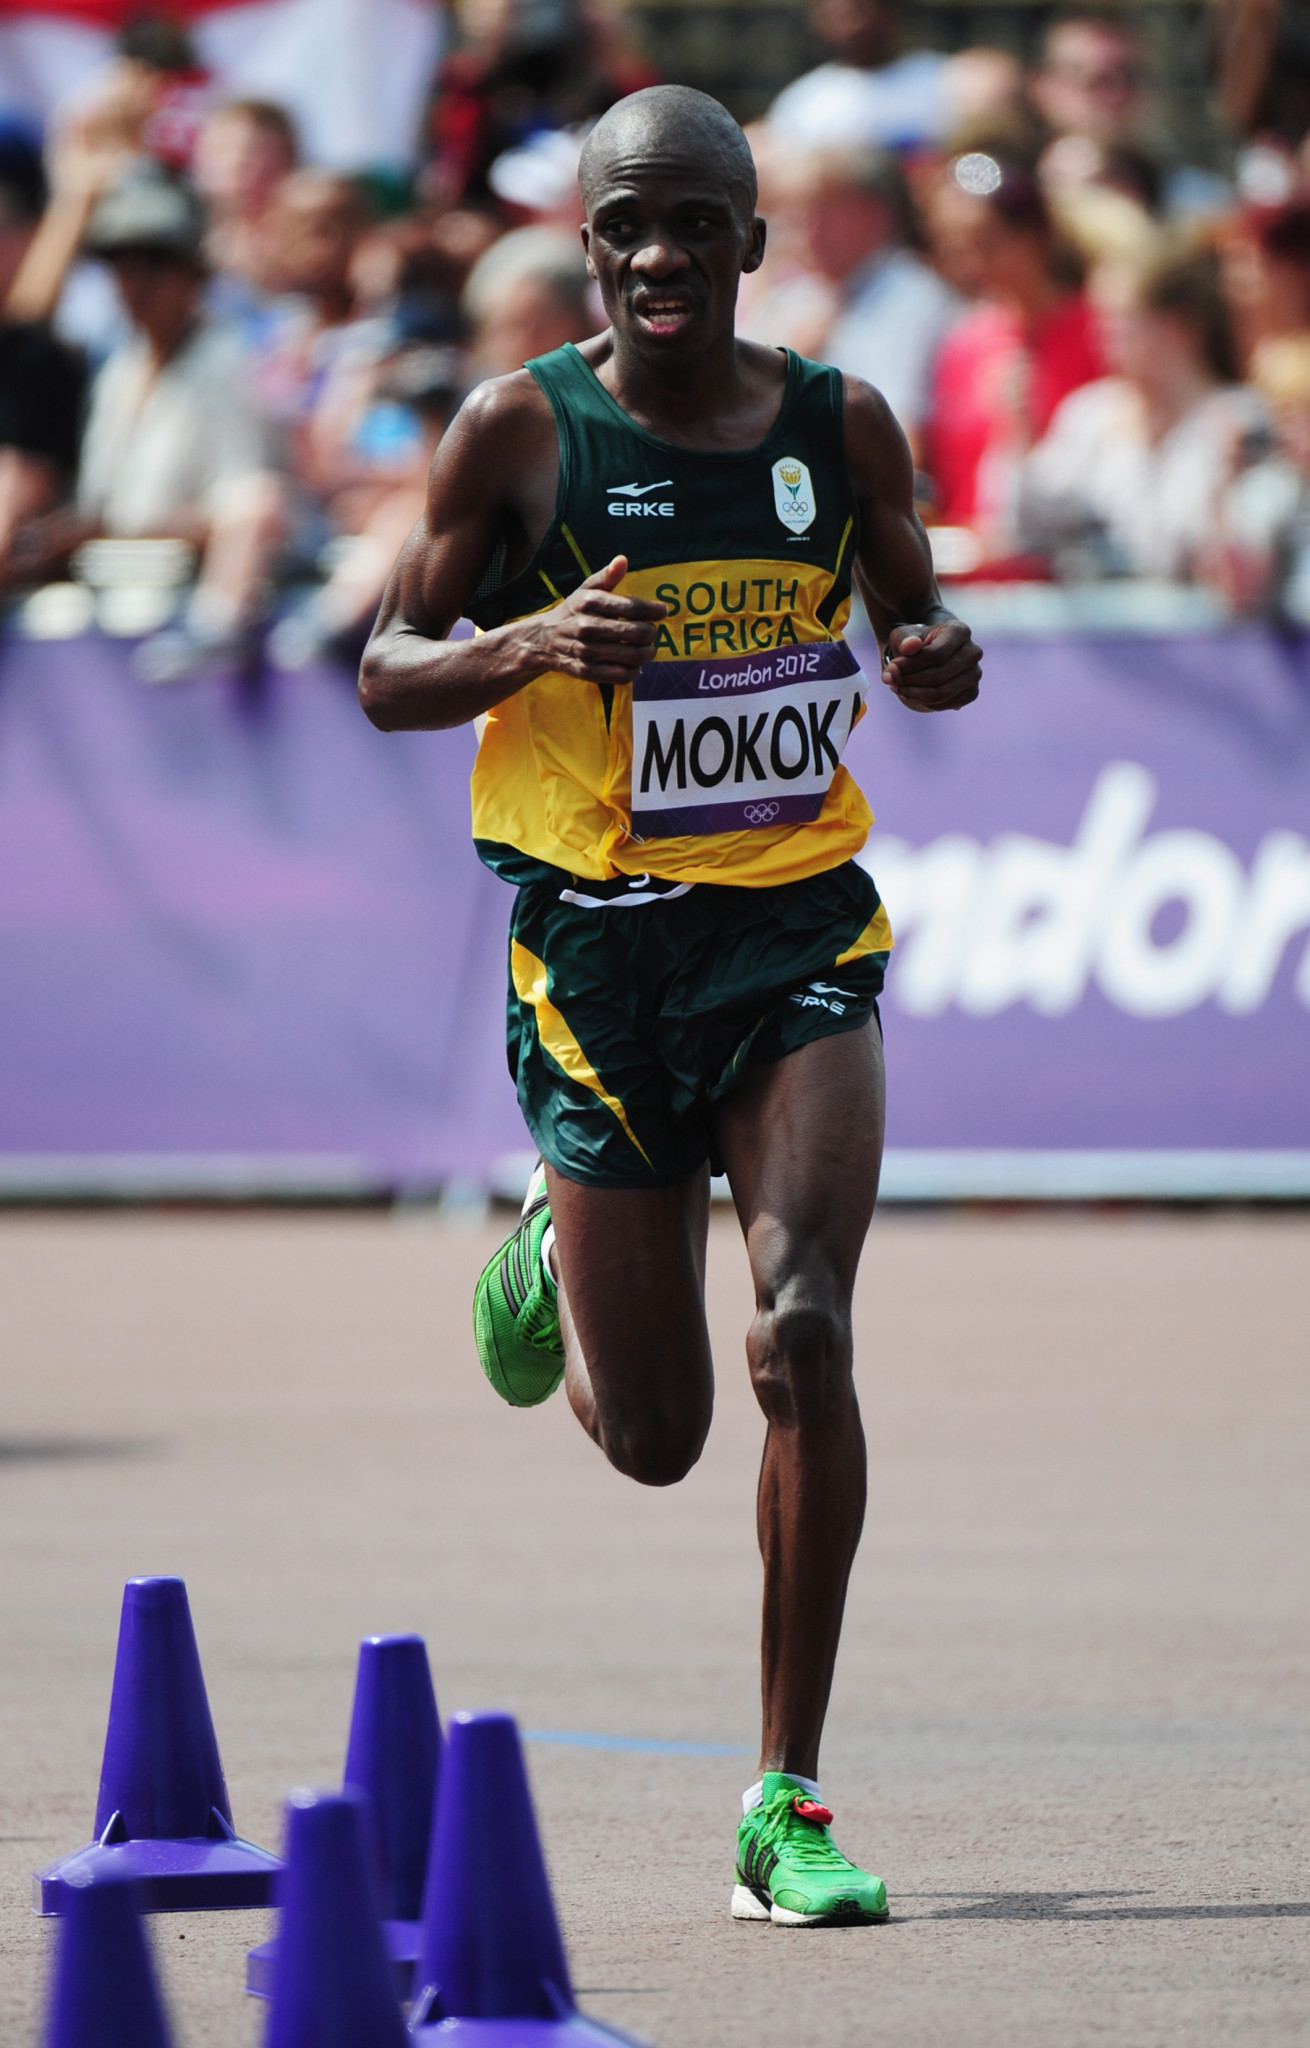 Two-time Olympian Stephen Mokoka is one of the latest additions to South Africa's Gold Coast 2018 squad ©Getty Images